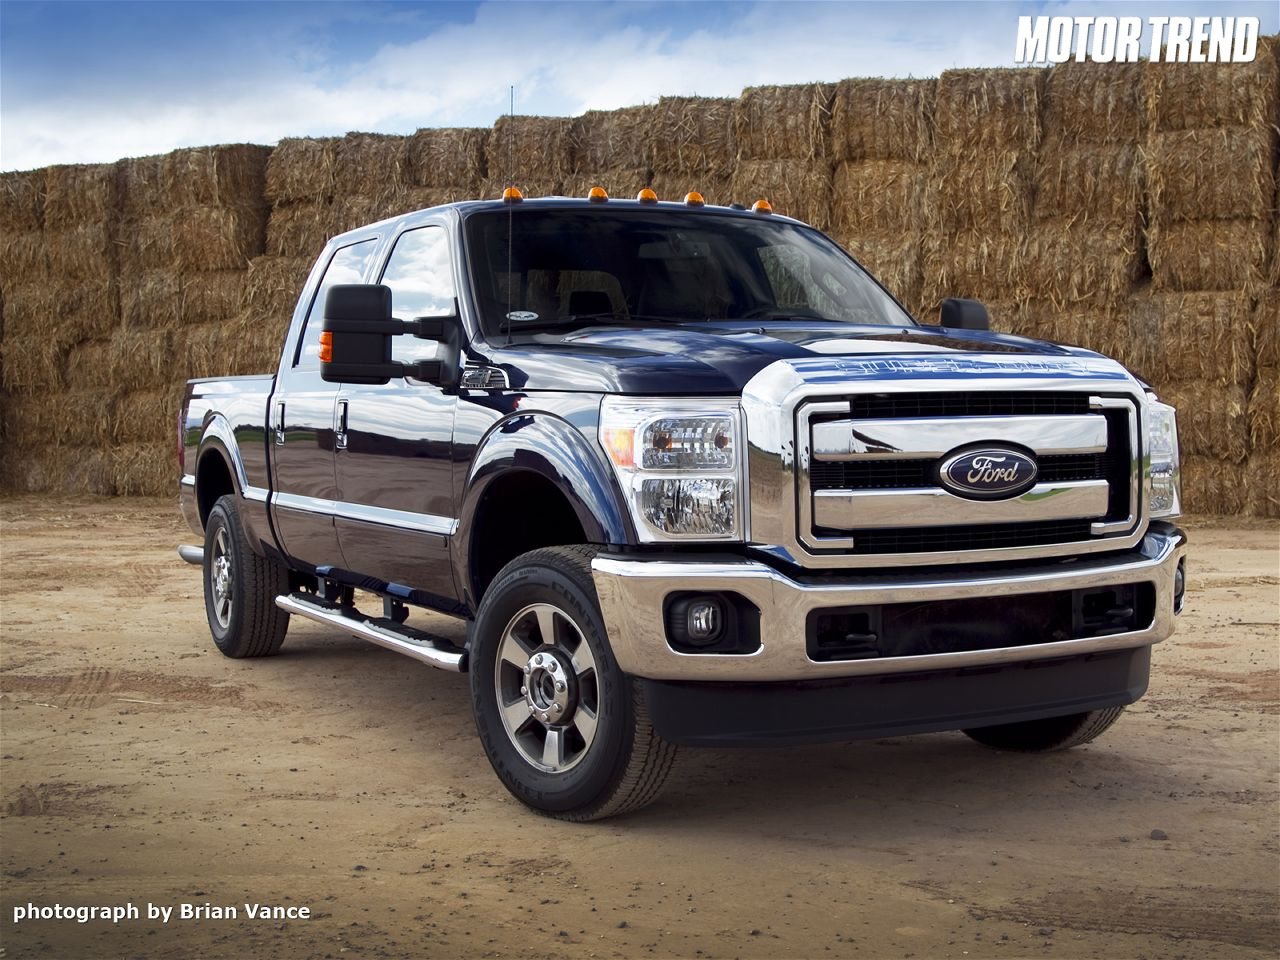 Ford Super Duty >> 2011 FORD F-350 SUPER DUTY - Image #15